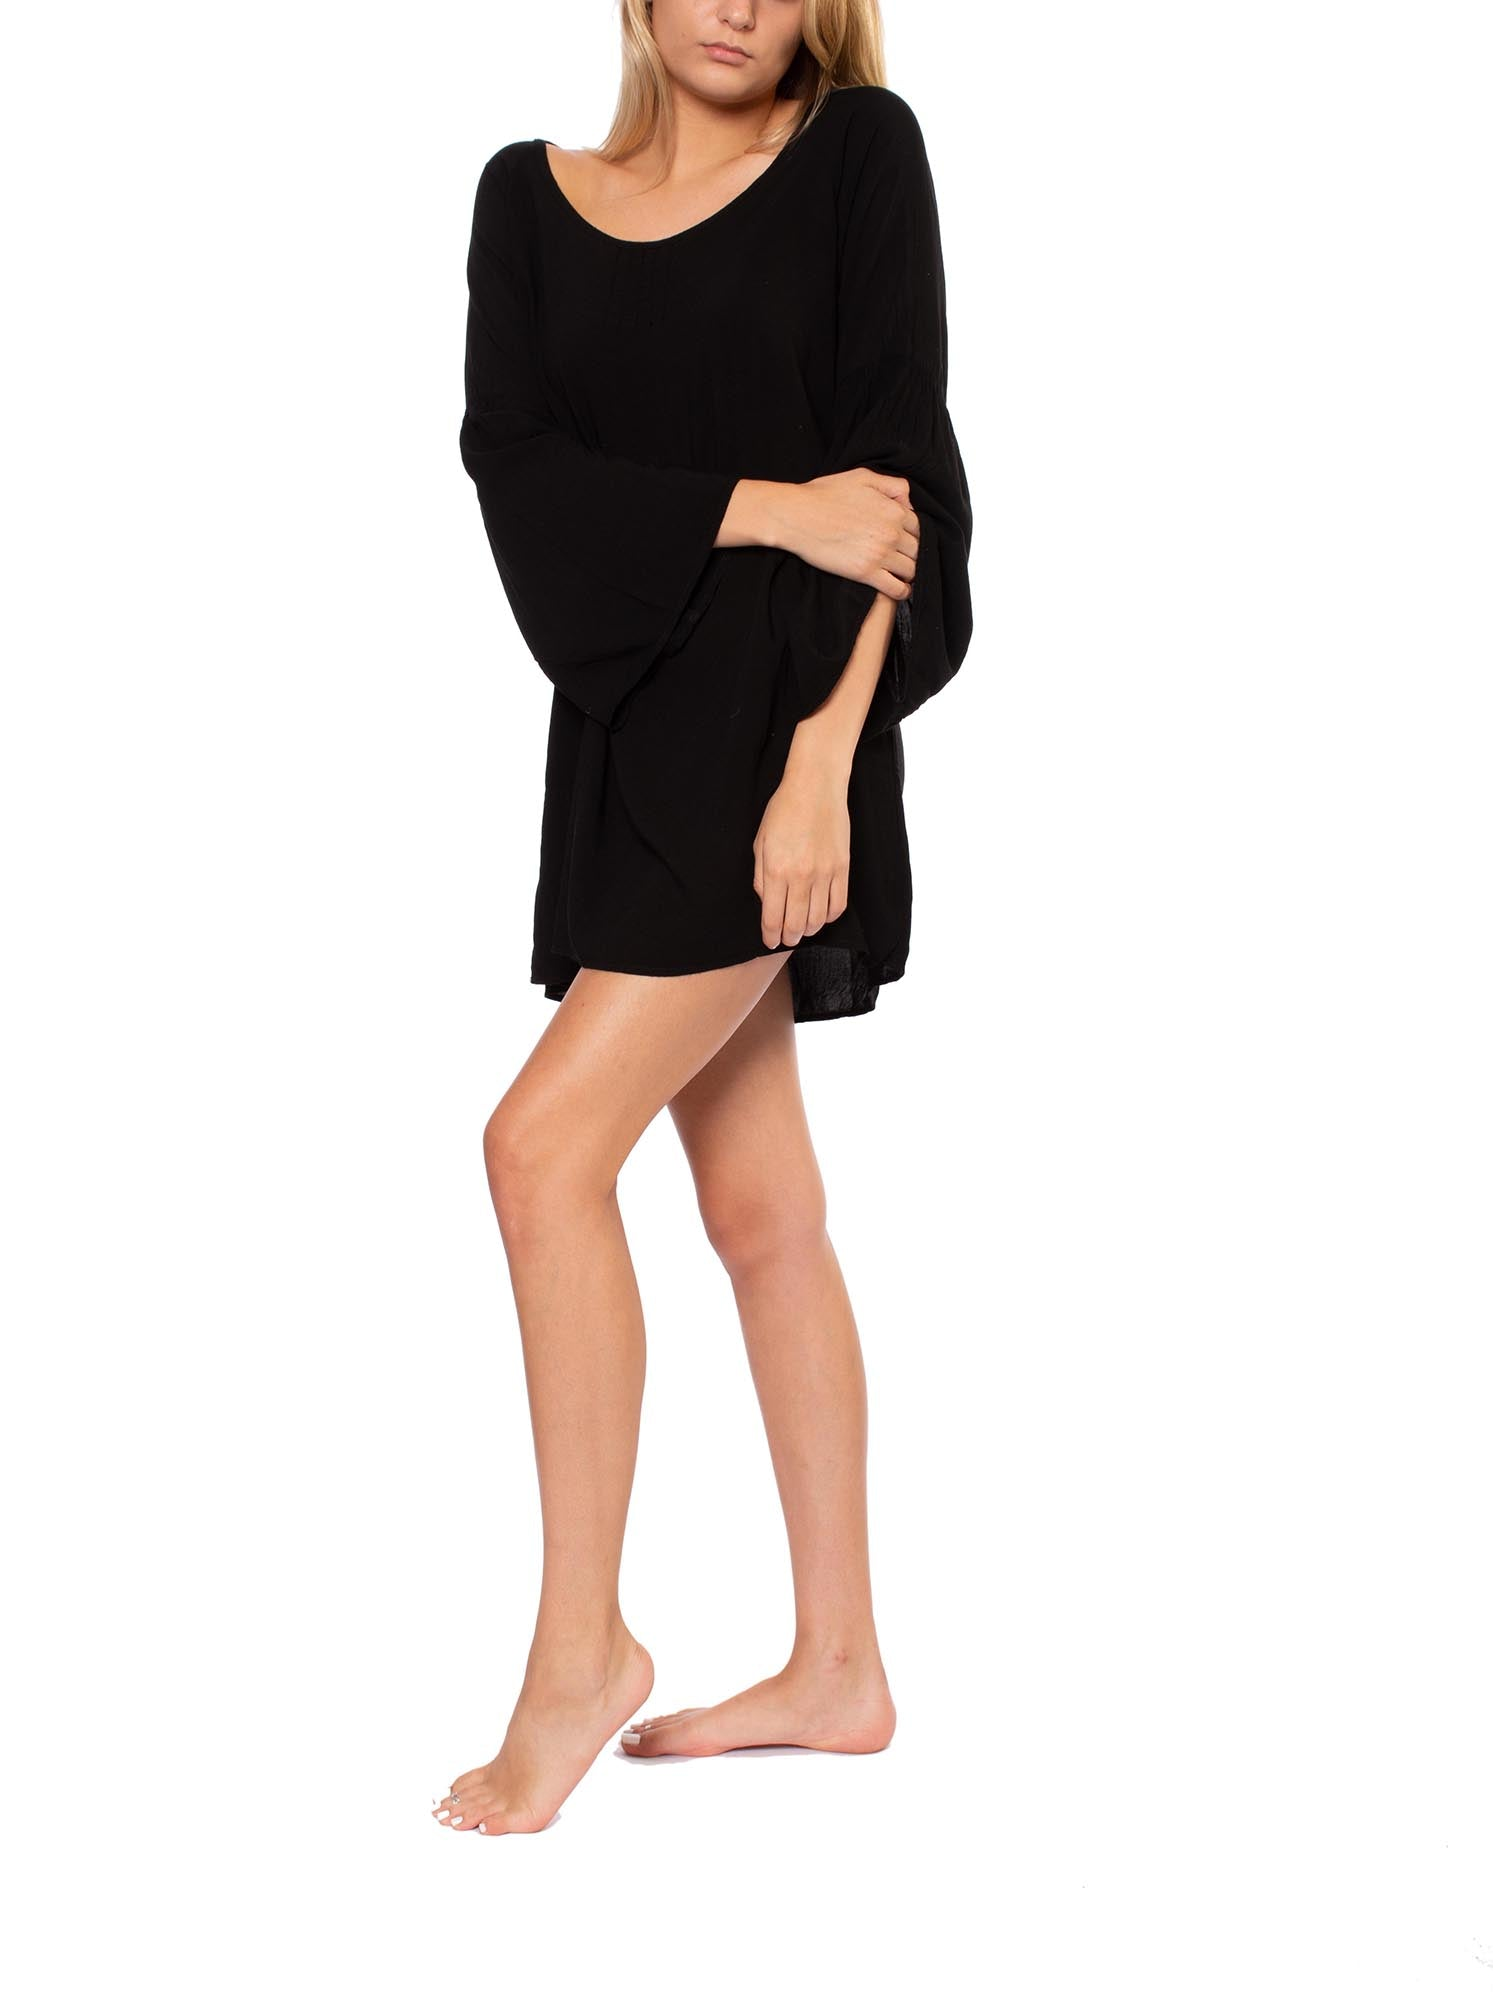 Hippy Pintuck Tunic (Style RV-16, Black) by Hard Tail Forever